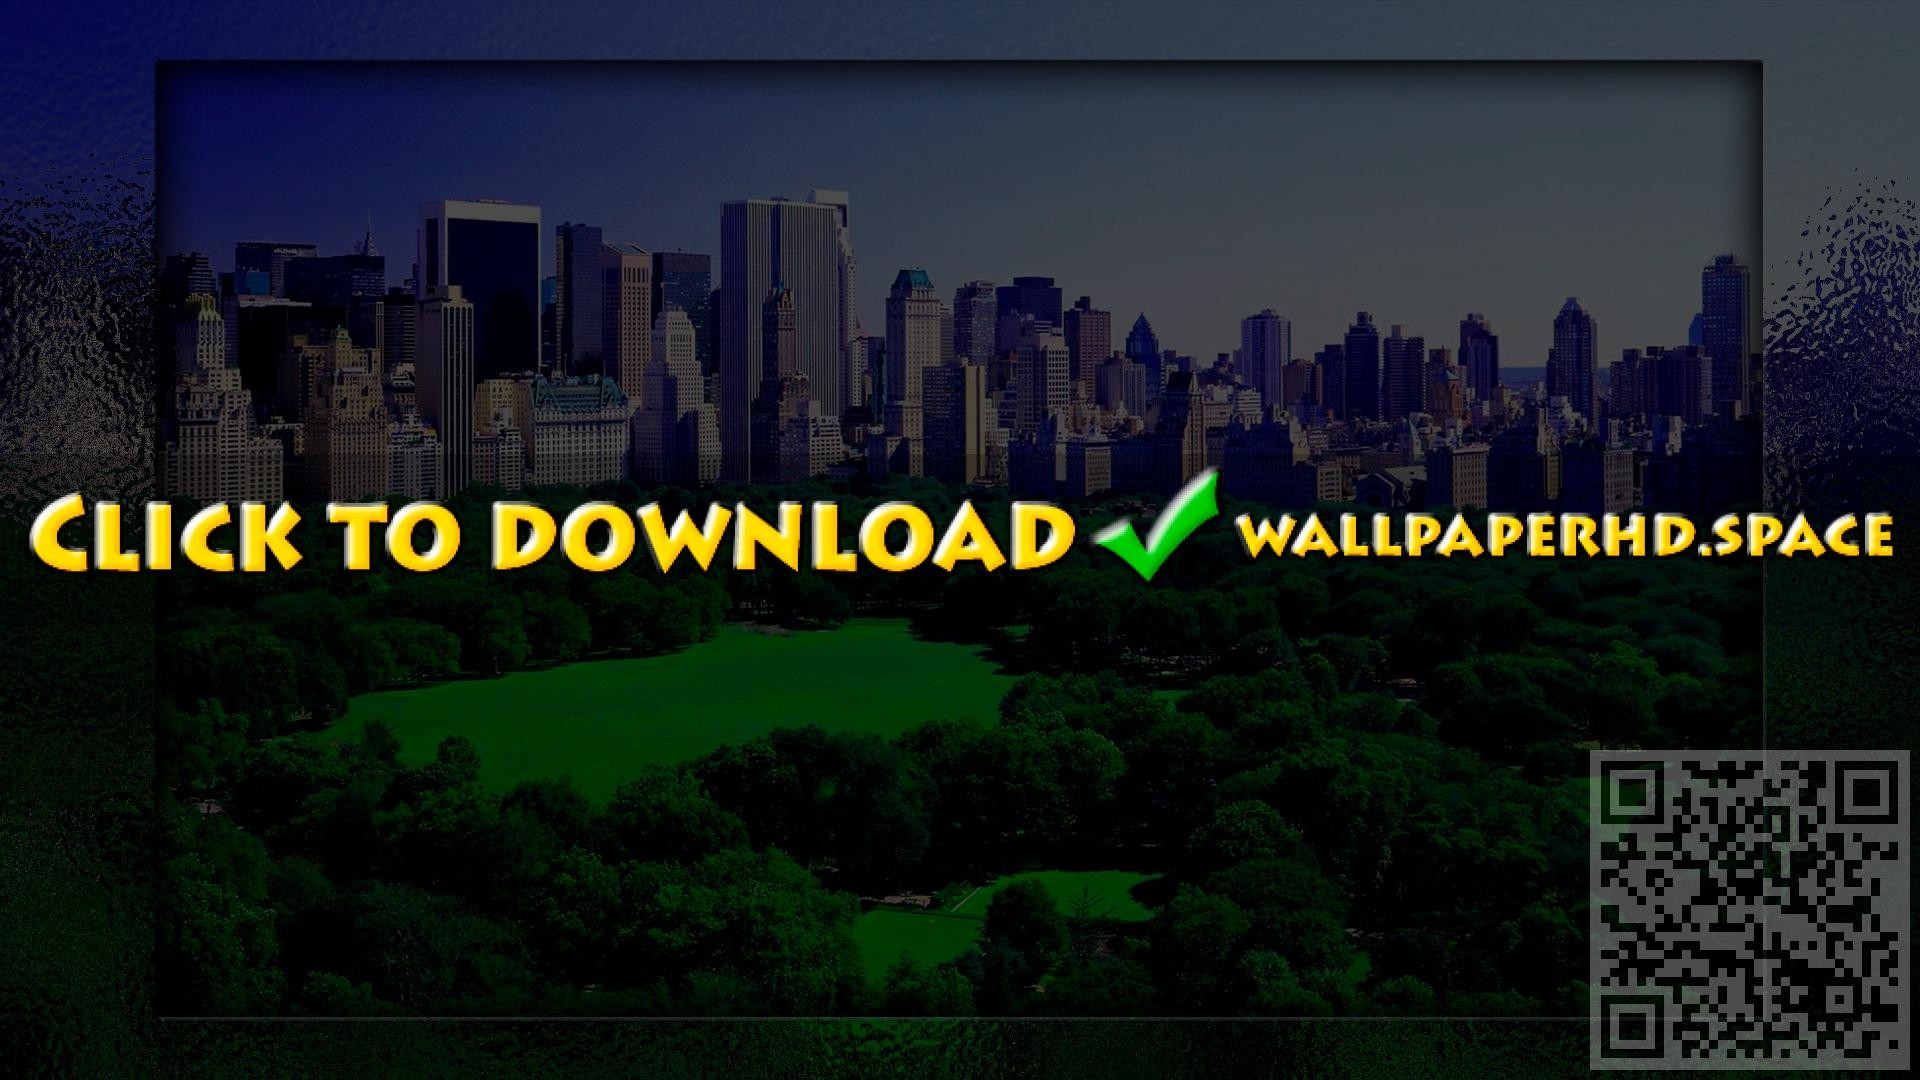 1920x1080 Central Park wallpaper,Central Park image,Central Park hd